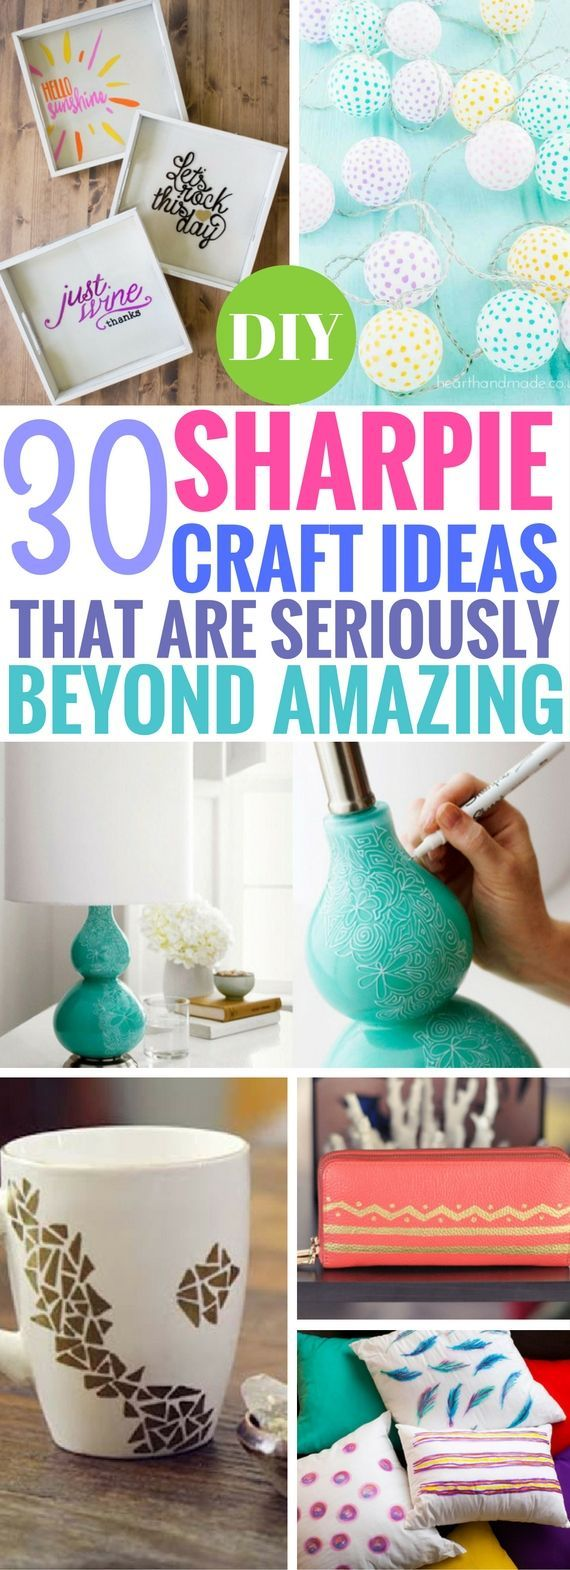 WOW. These DIY Sharpie Craft Ideas are shockingly fantastic! Now I can actually make use of sharpies. From picture frames to awesome mug designs, LOVE THIS.